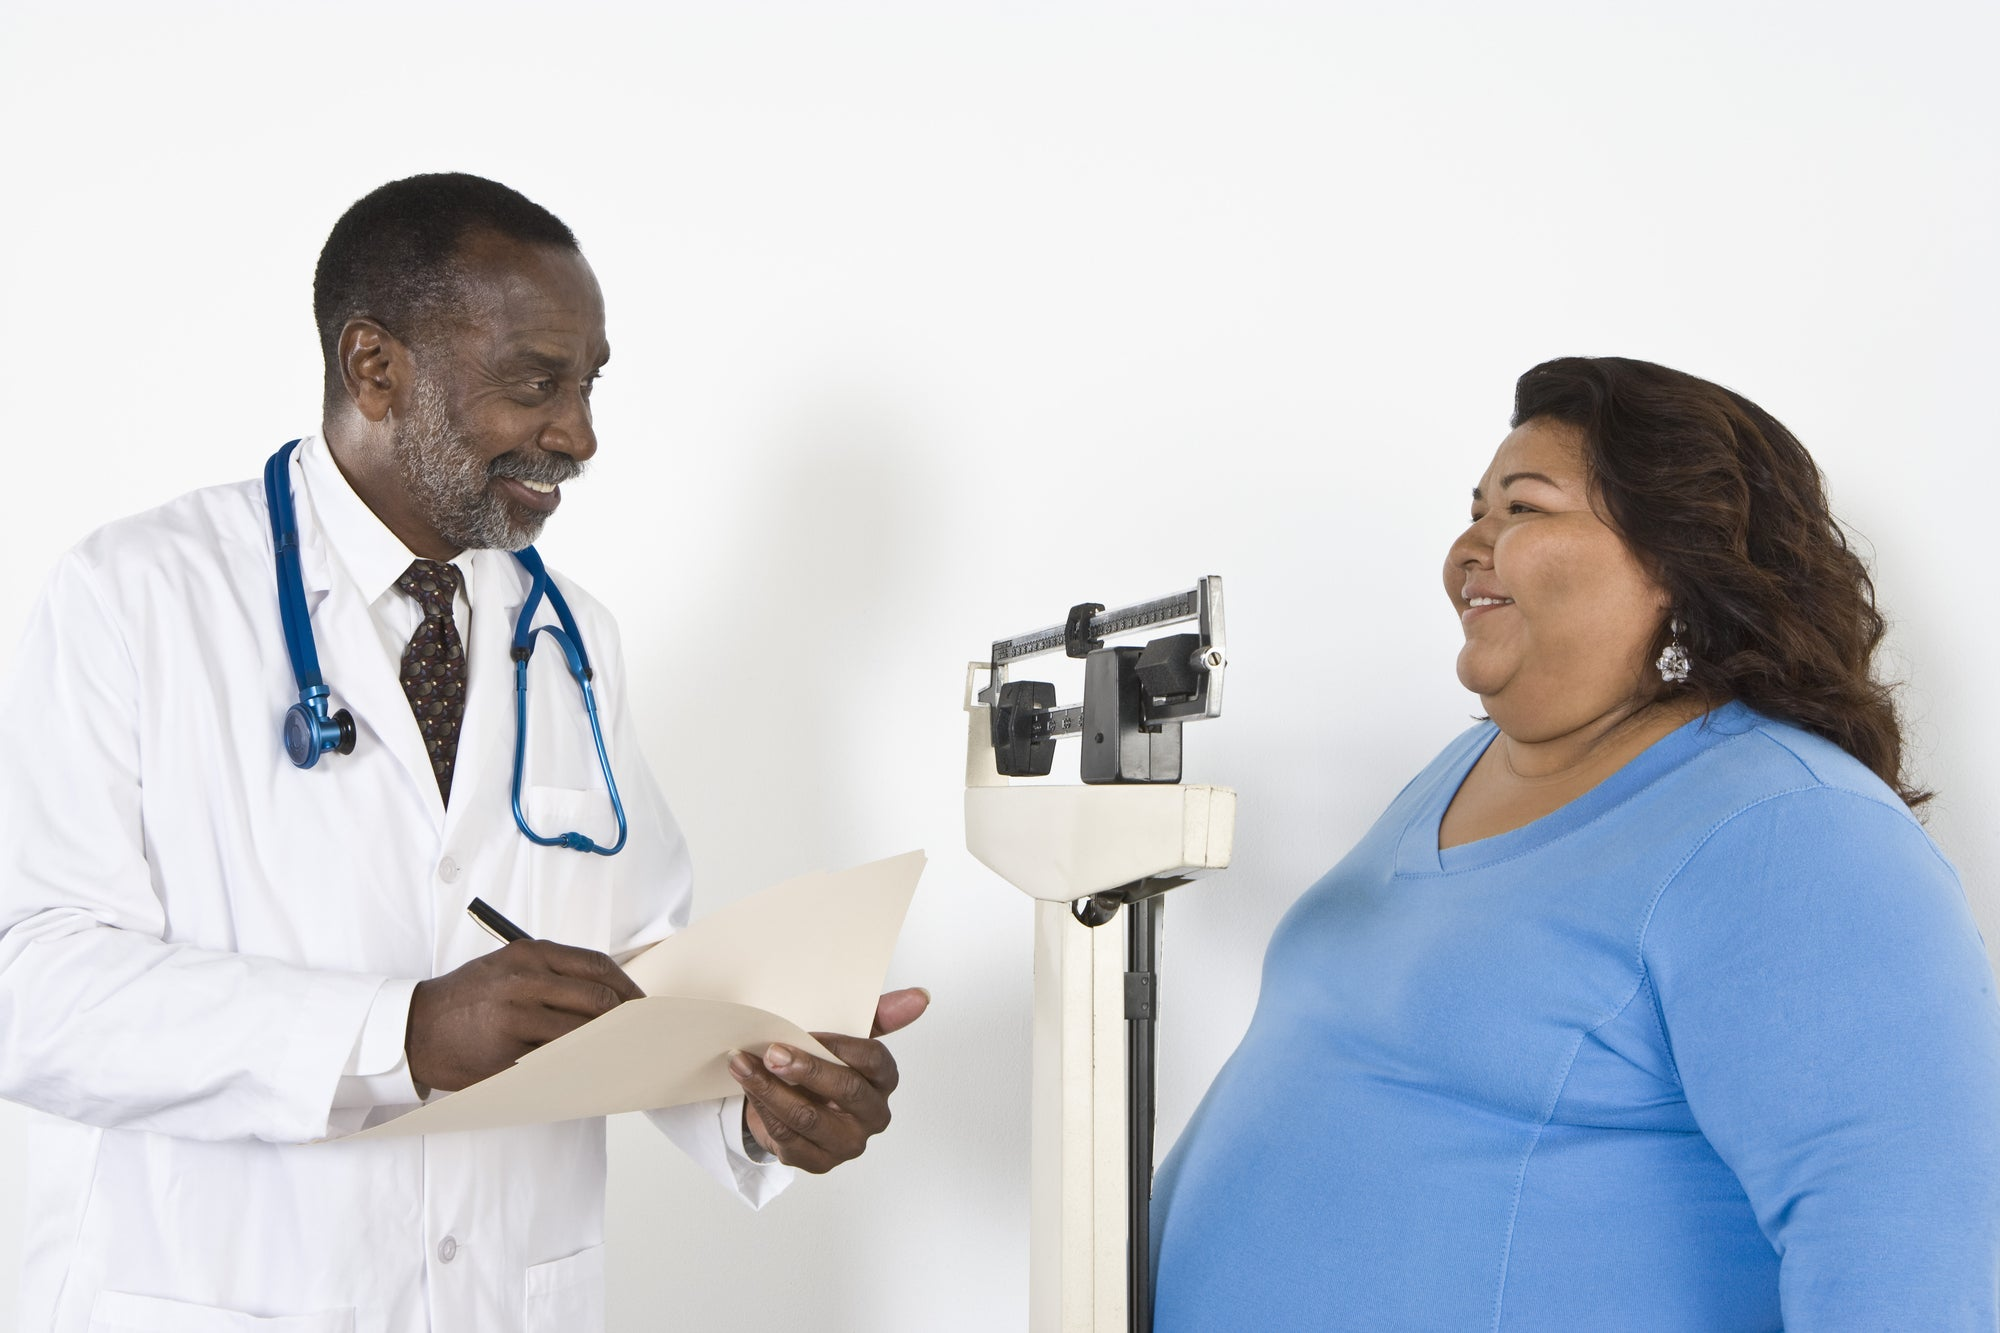 a doctor smiles at a patient while reading her weight off a scale